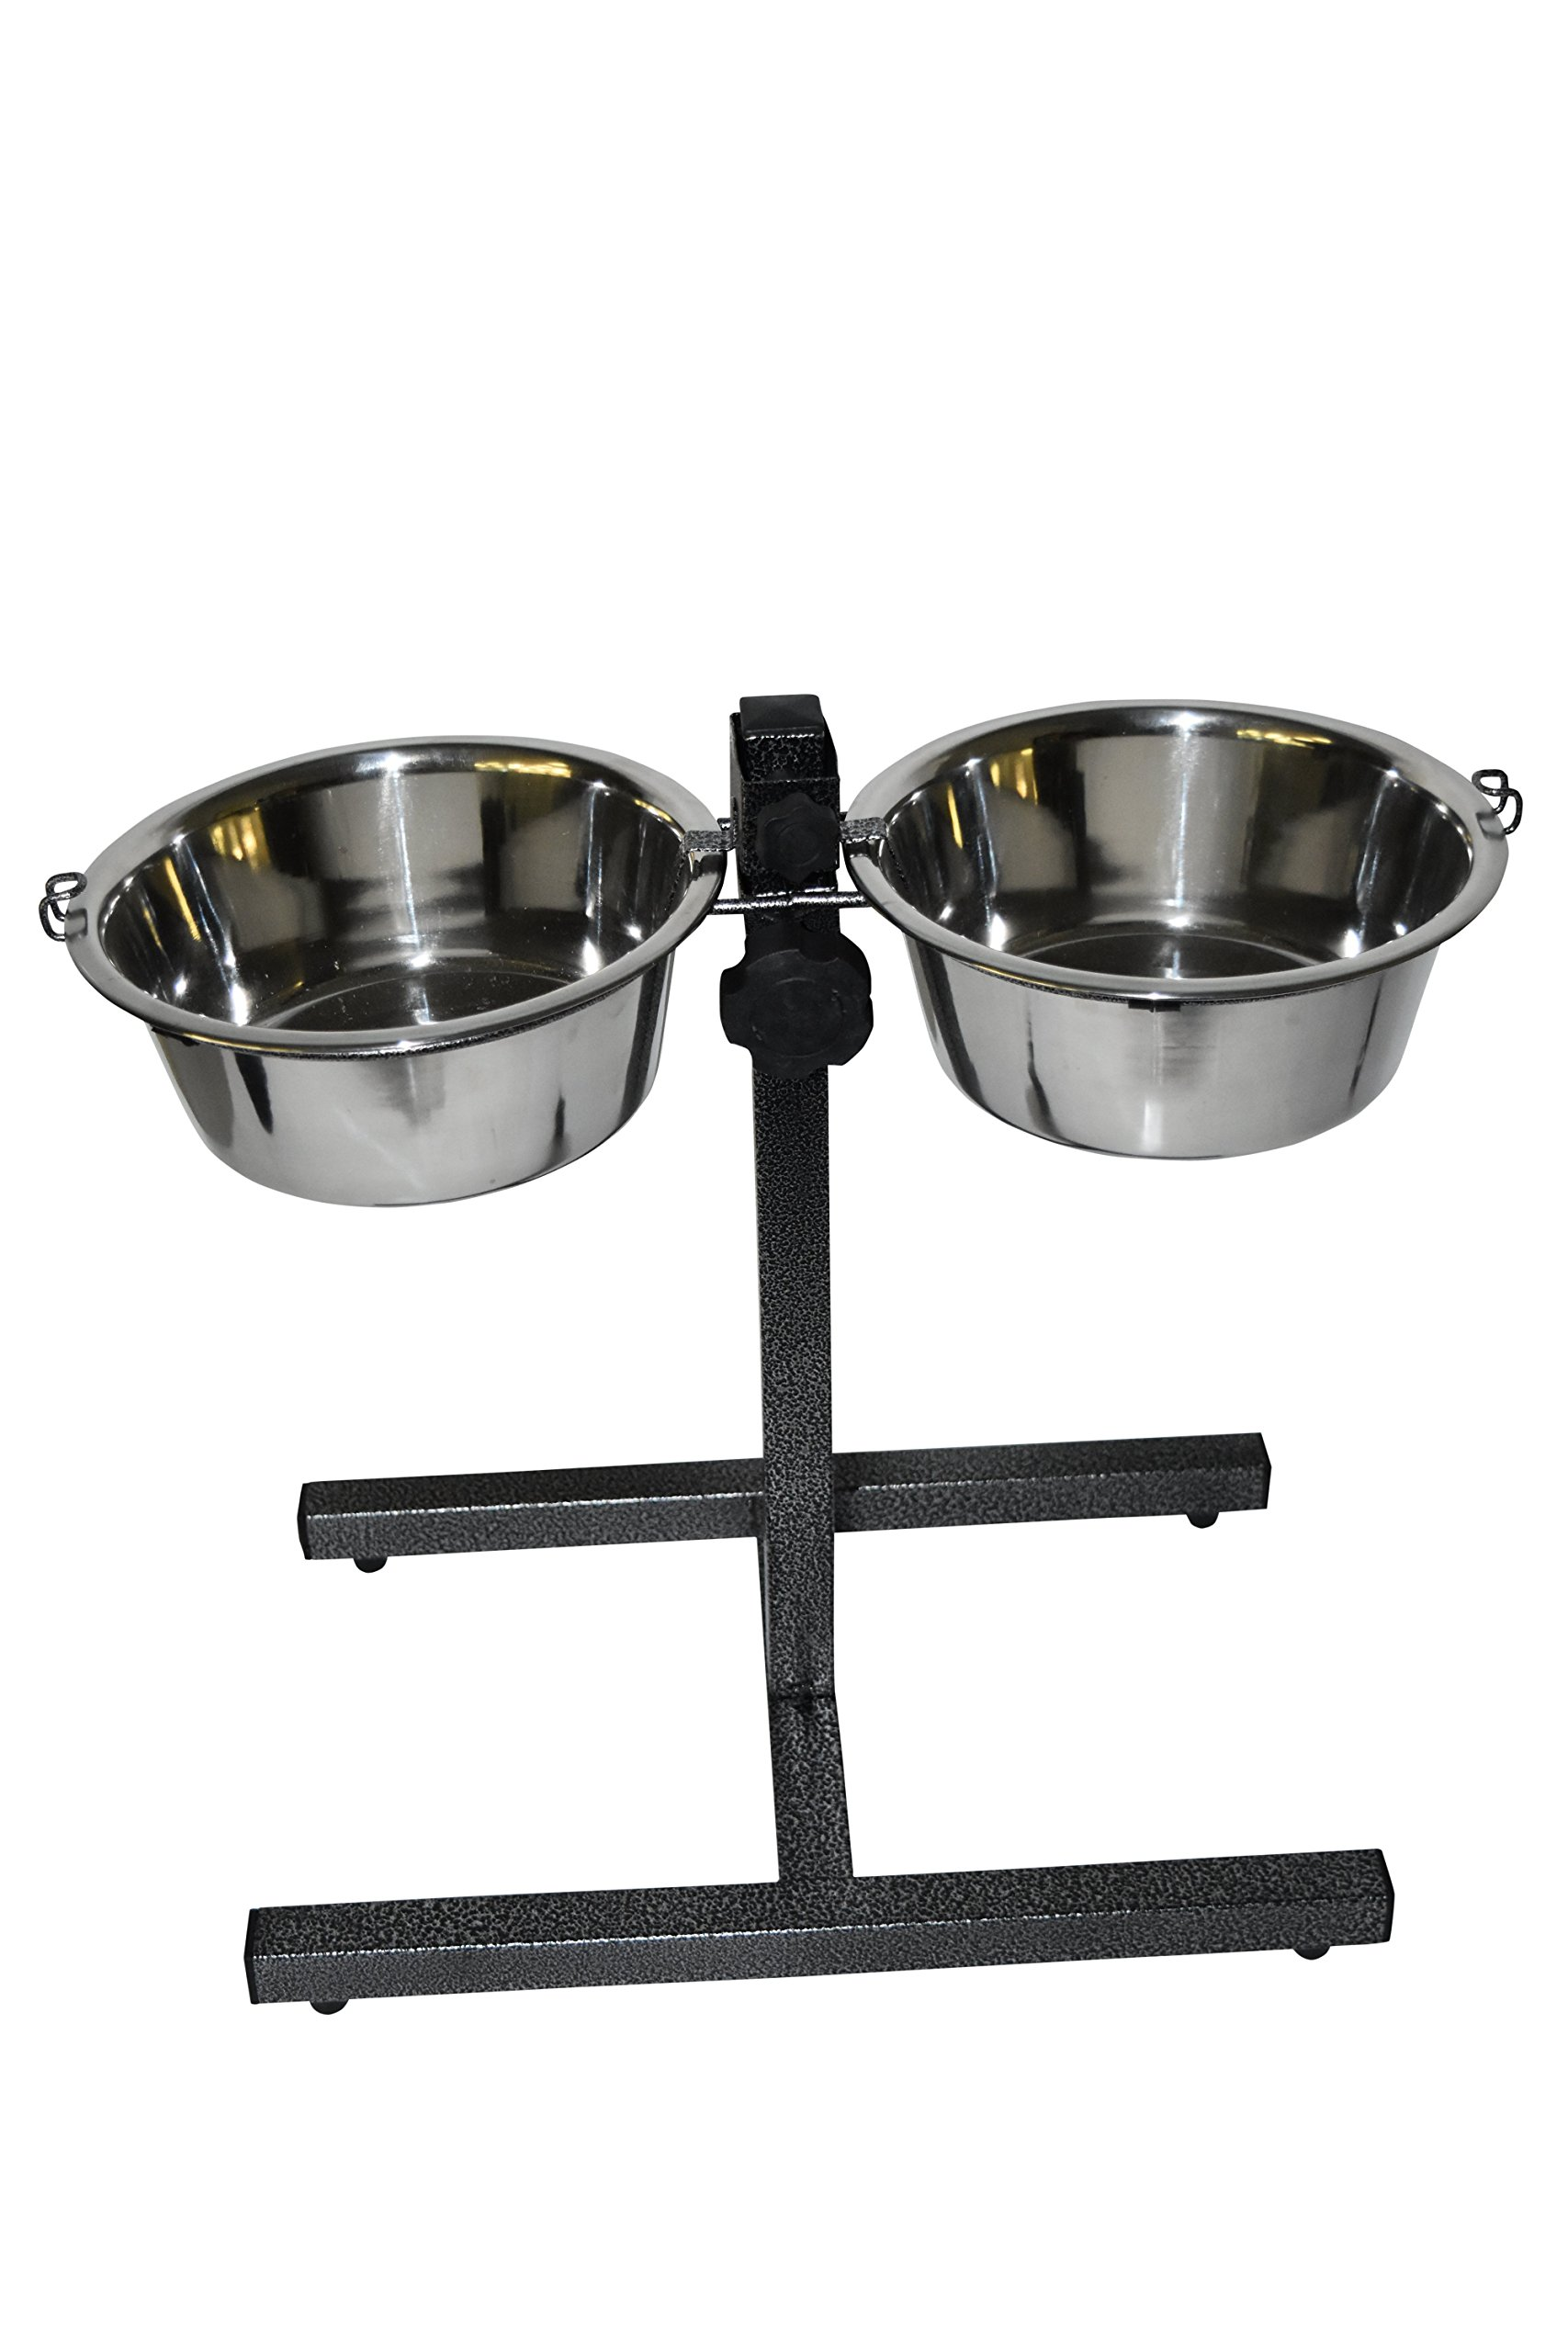 Stellar Bowls Adjustable Double Diner with H Base with 2 bowls, 5-quart